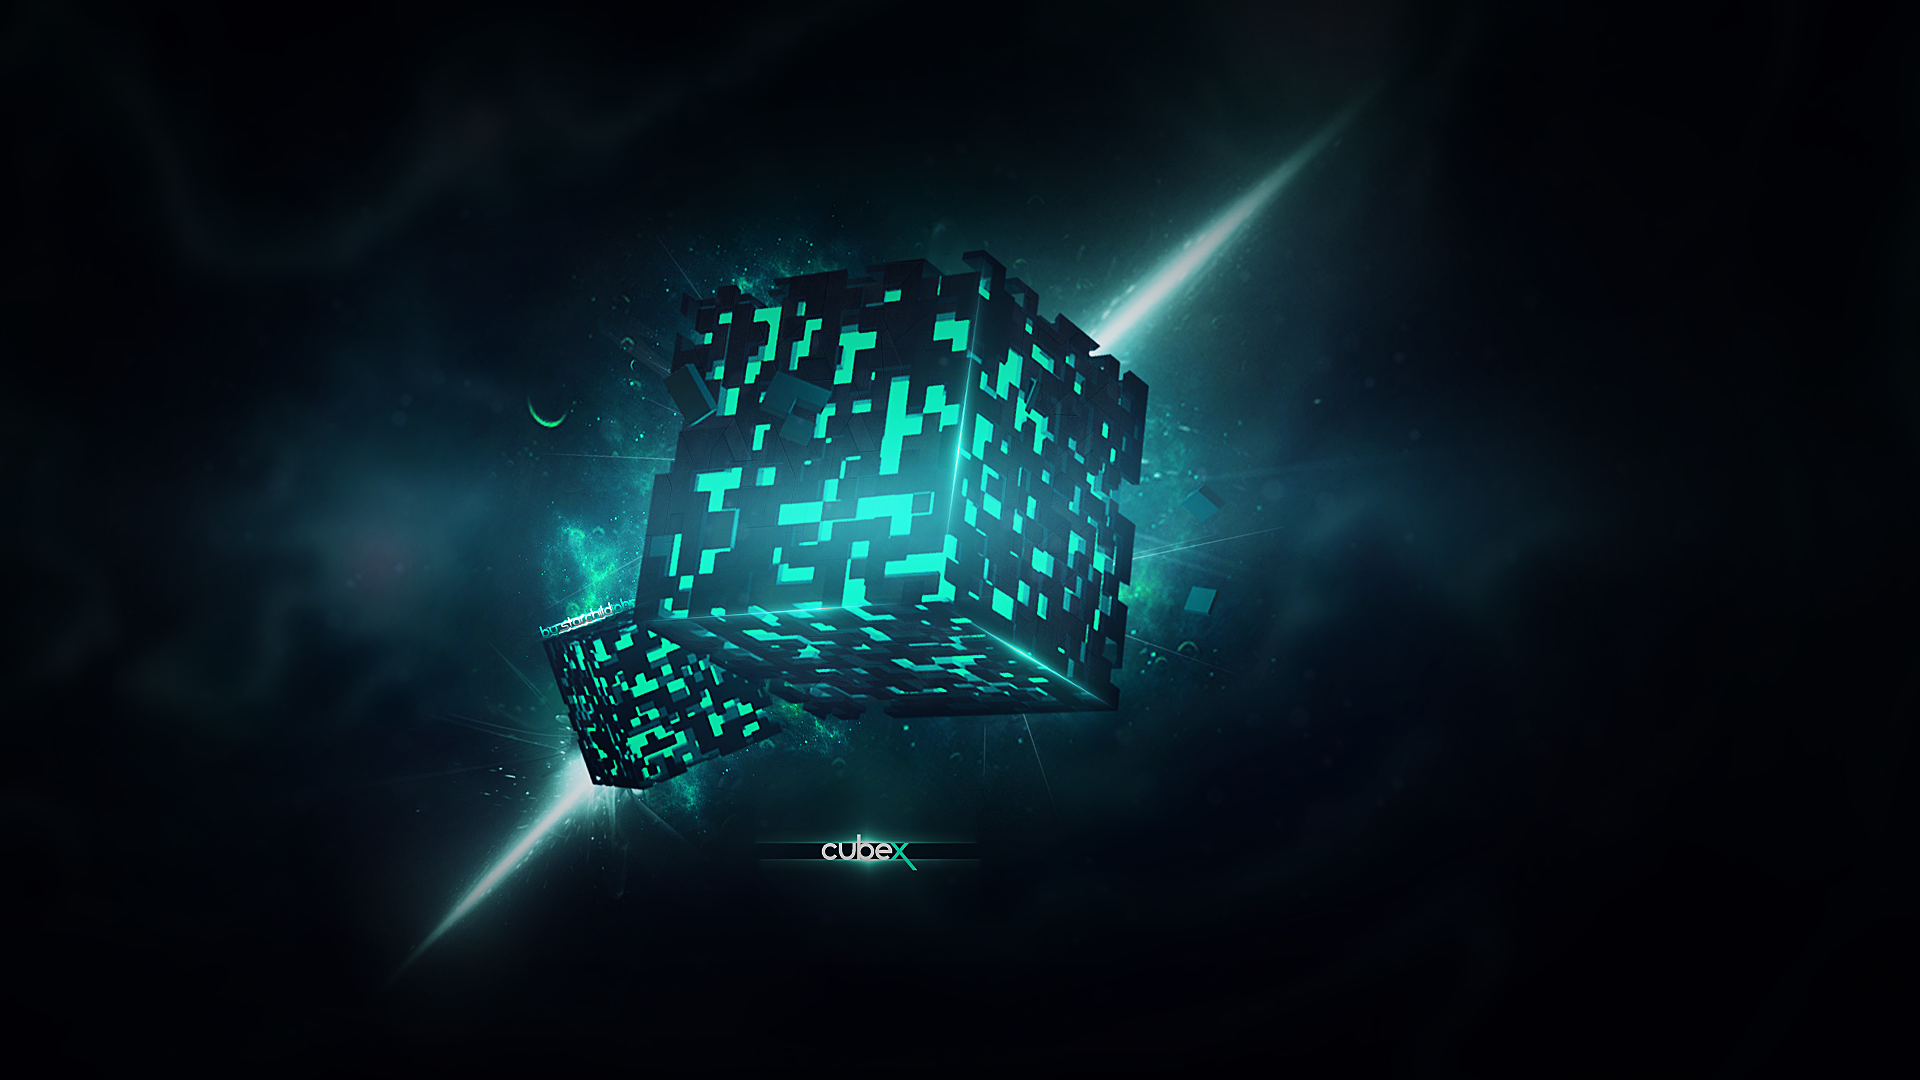 Cube Hd Wallpaper Background Image 1920x1080 Id